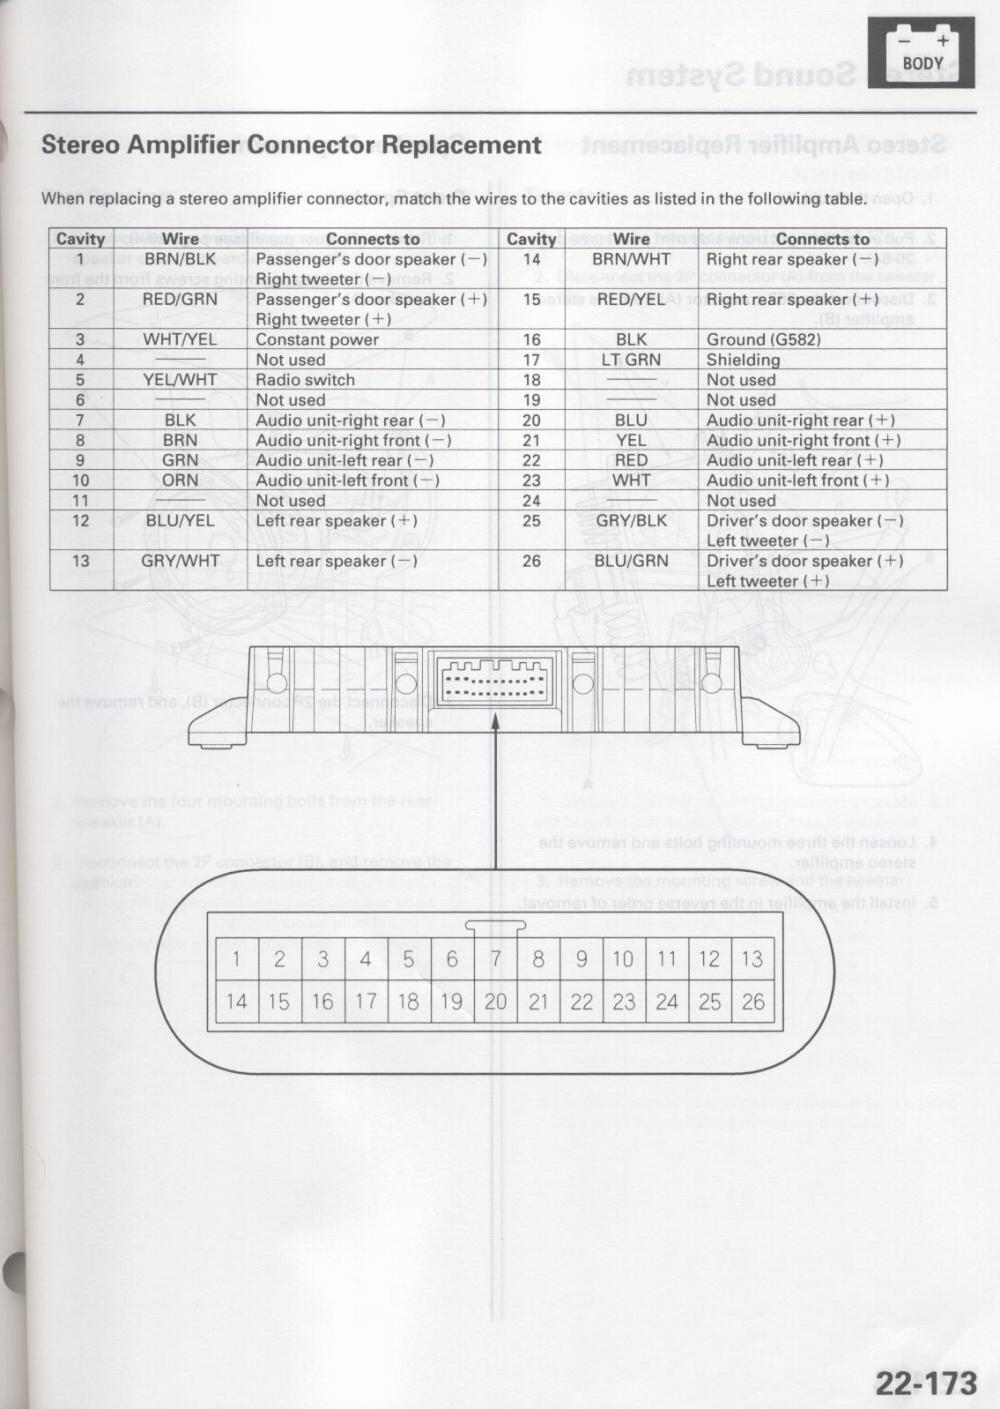 Car Radio Stereo Audio Wiring Diagram Autoradio Connector Wire 2004 F150 Factory Subwoofer Harness Installation Schematic Schema Esquema De Conexiones Anschlusskammern Konektor